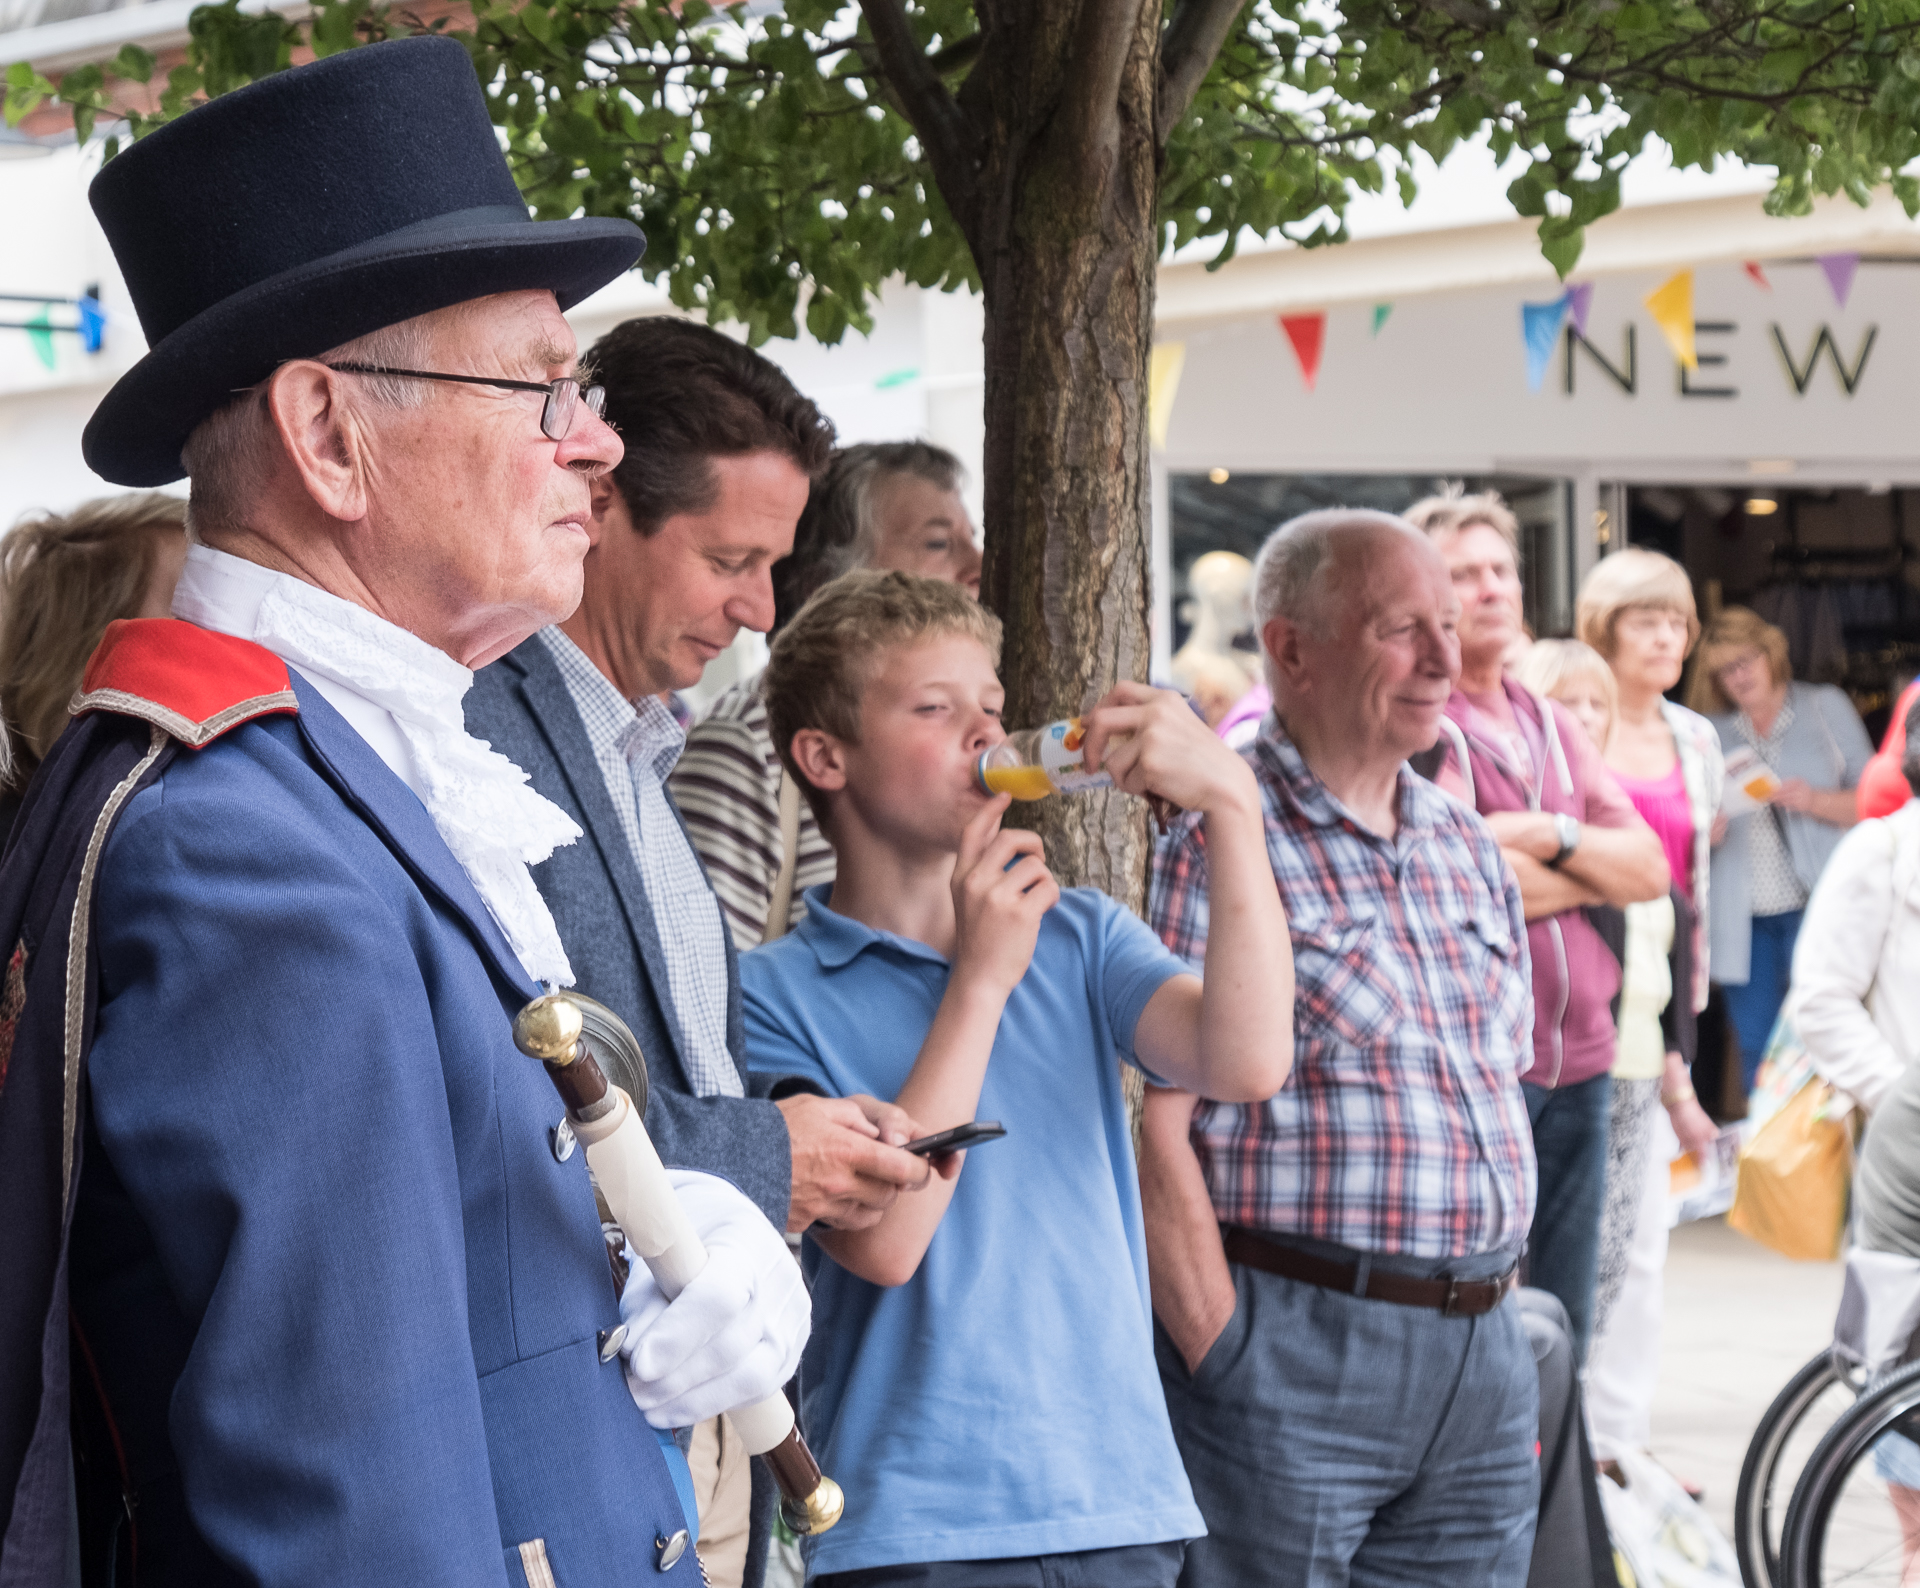 Sat 30th June at 12 noon ArtsFest Launch in St Andrews Square